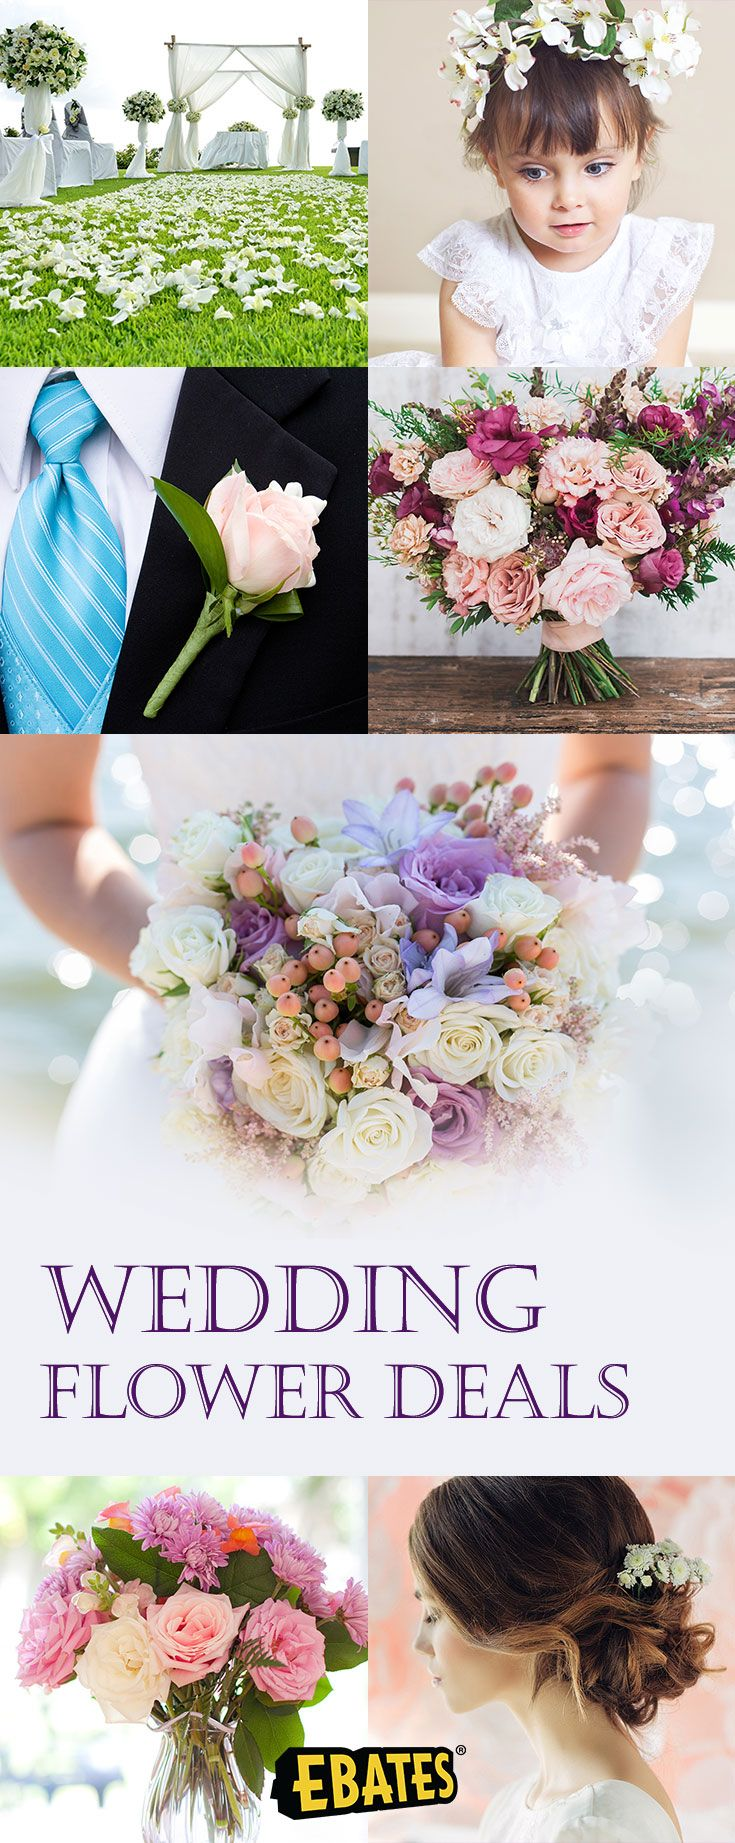 Shop wedding flowers and wedding decorations for your big day at top wedding stores. Save with wedding flowers deals & Cash Back at Ebates.